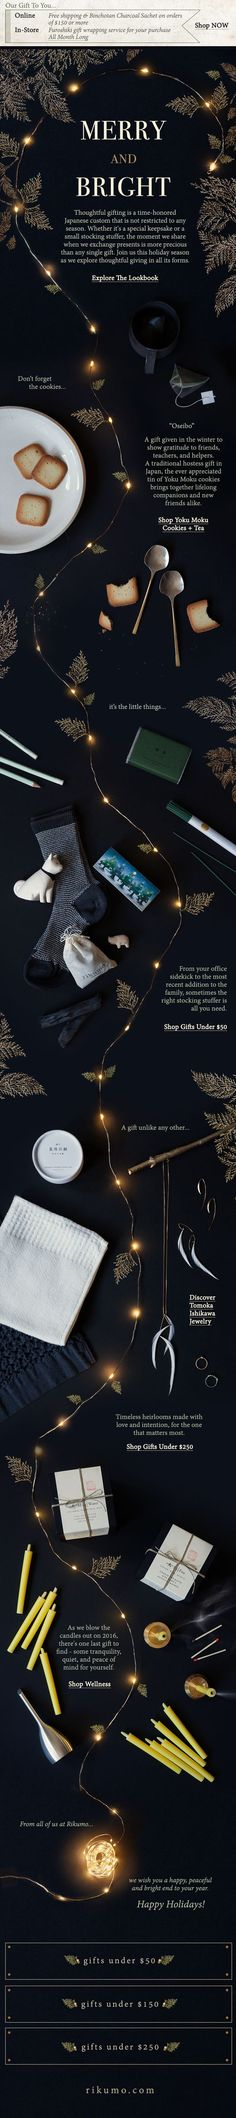 Here's 15 examples of great holiday email designs from brands that are totally nailing the holiday campaign game. Get inspired for your next email campaign. Email Layout, Web Layout, Layout Design, Website Layout, Email Marketing Campaign, Marketing Ideas, Holiday Emails, Web Design, Graphic Design